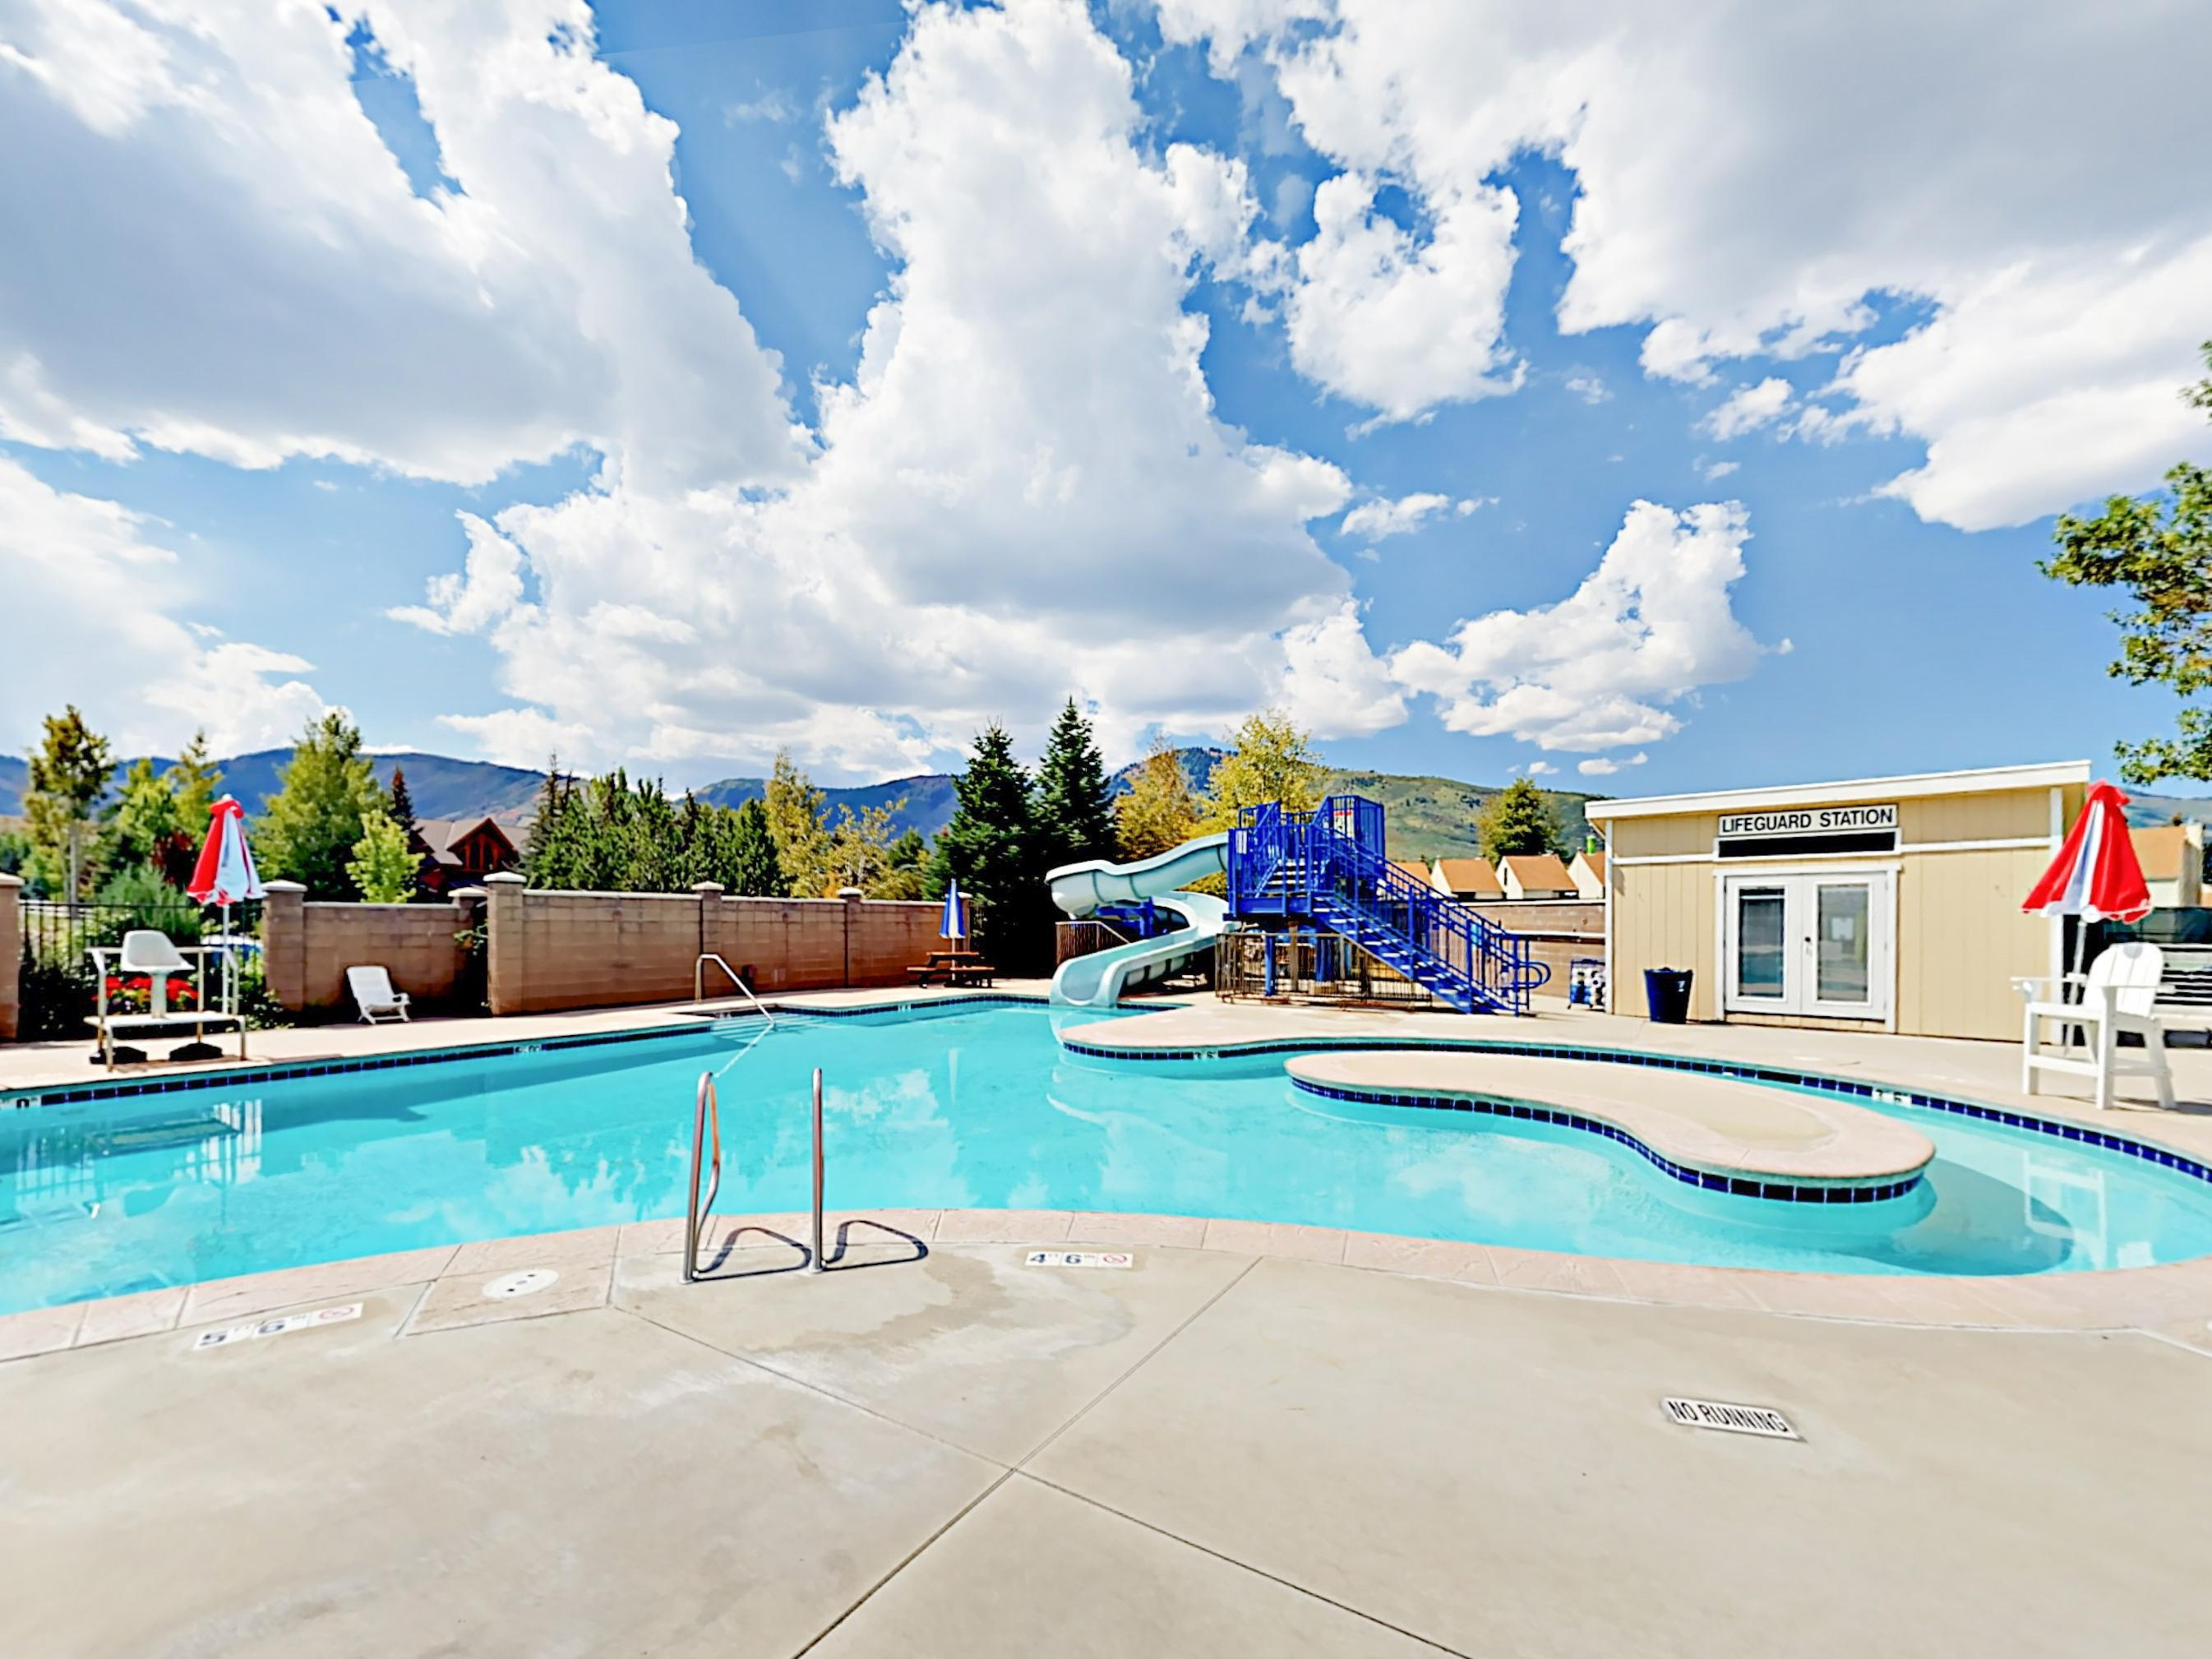 Less than a half-mile away, you'll have quick access to all the amenities at the nearby rec center.